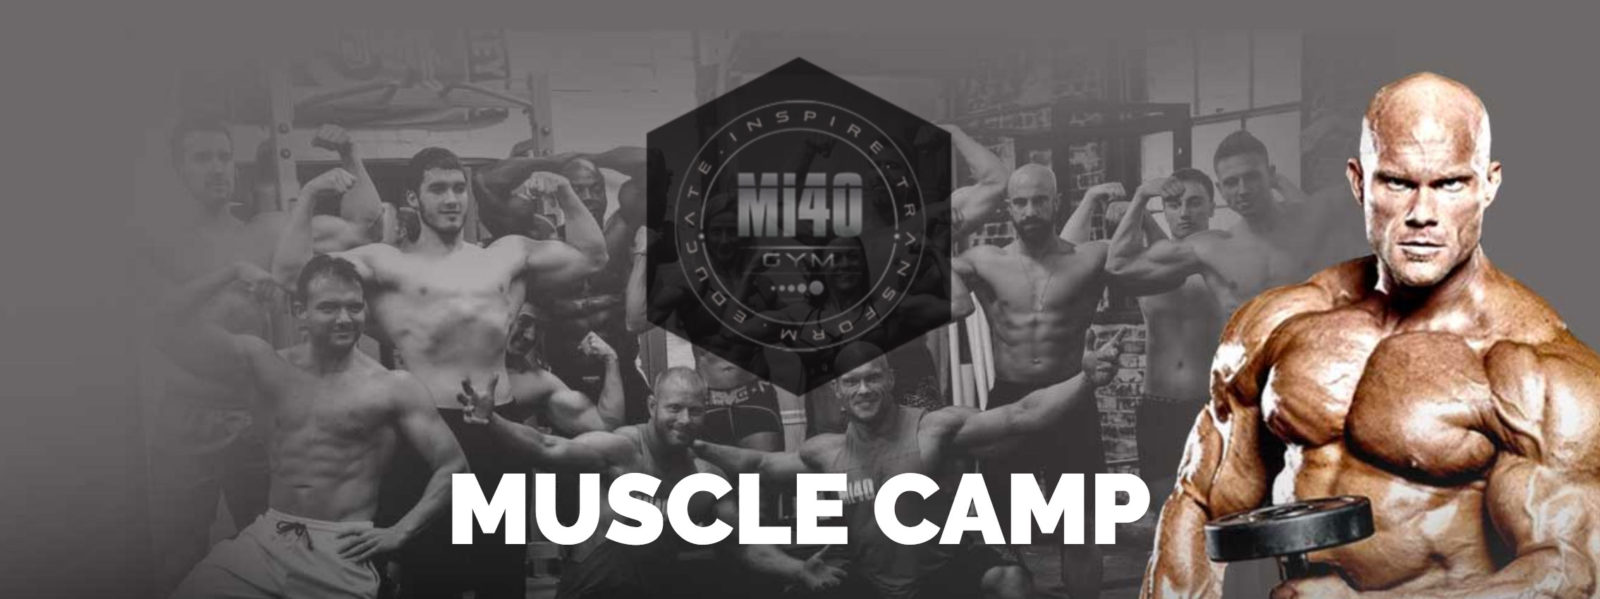 muscle-camp